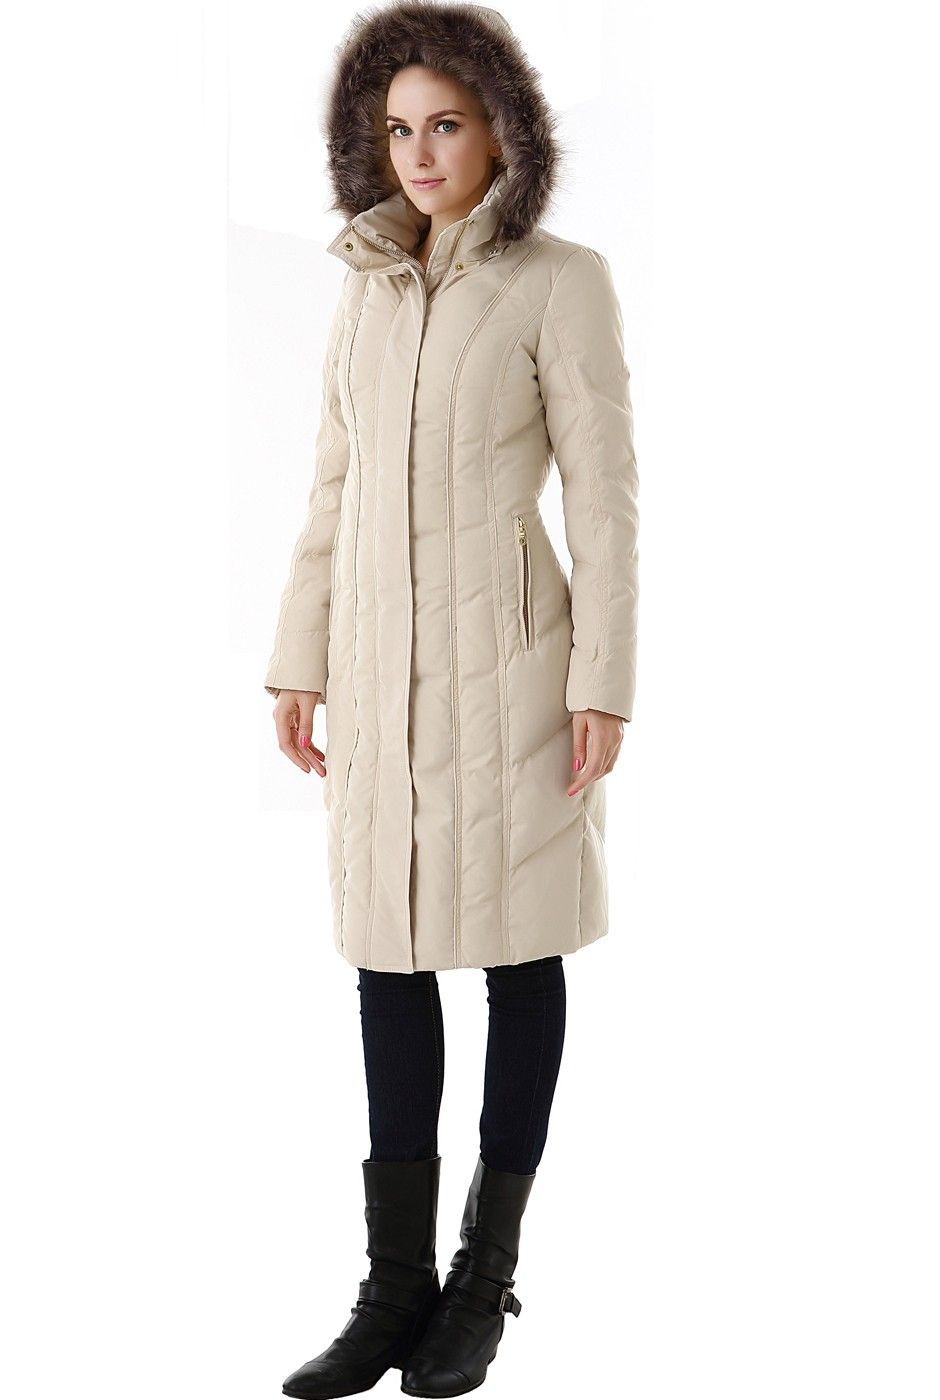 long down womens coat | Womens Coats | Pinterest | Coats, Women's ...